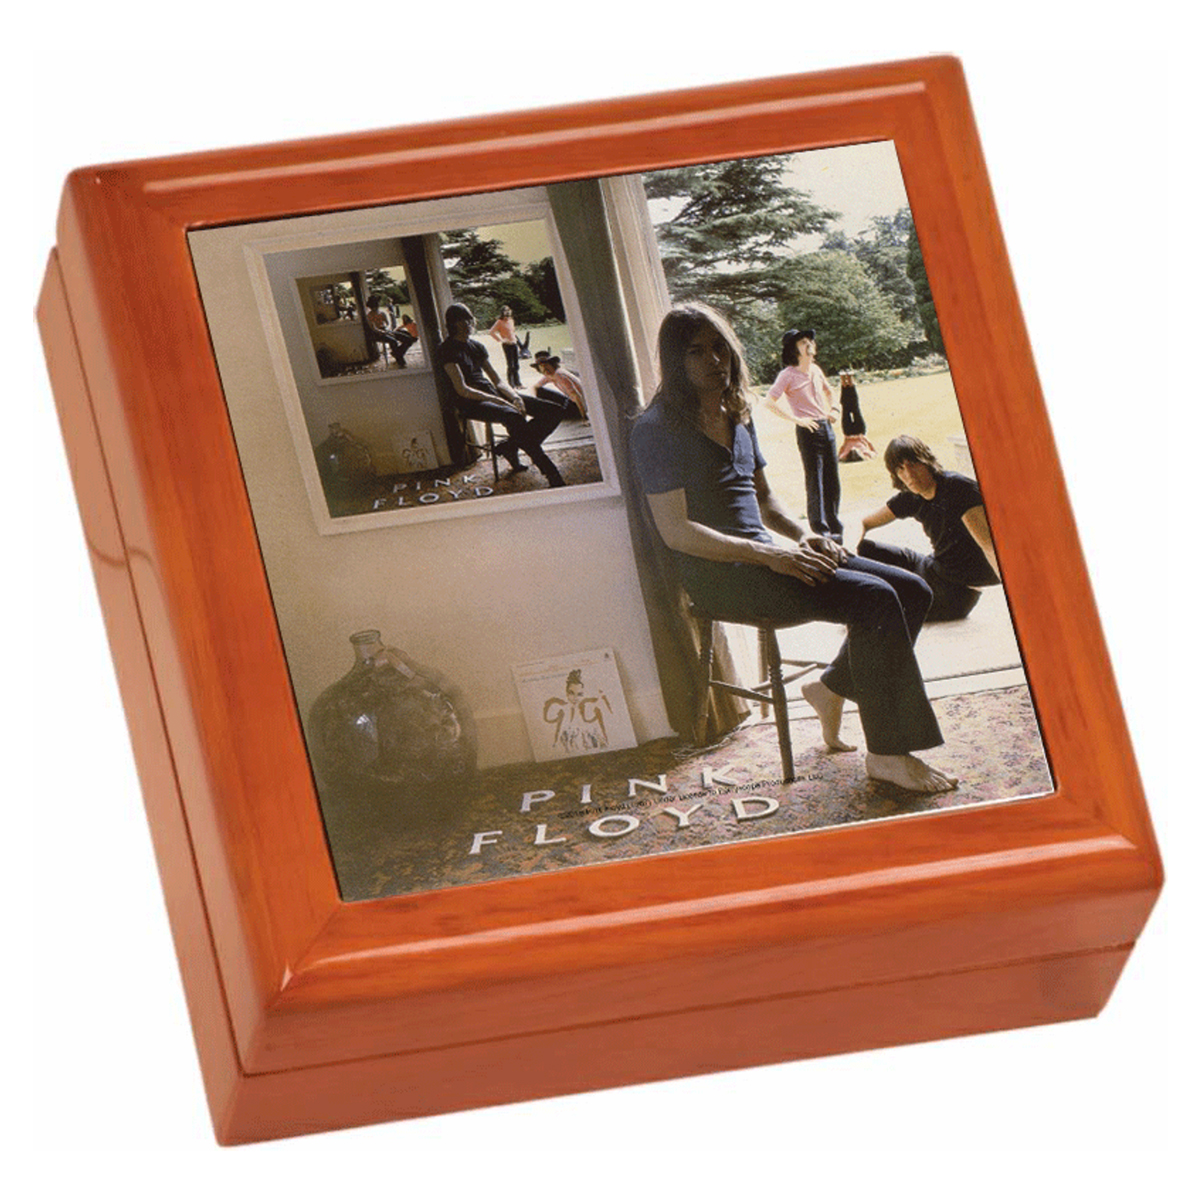 Ummagumma Wooden Keepsake Box